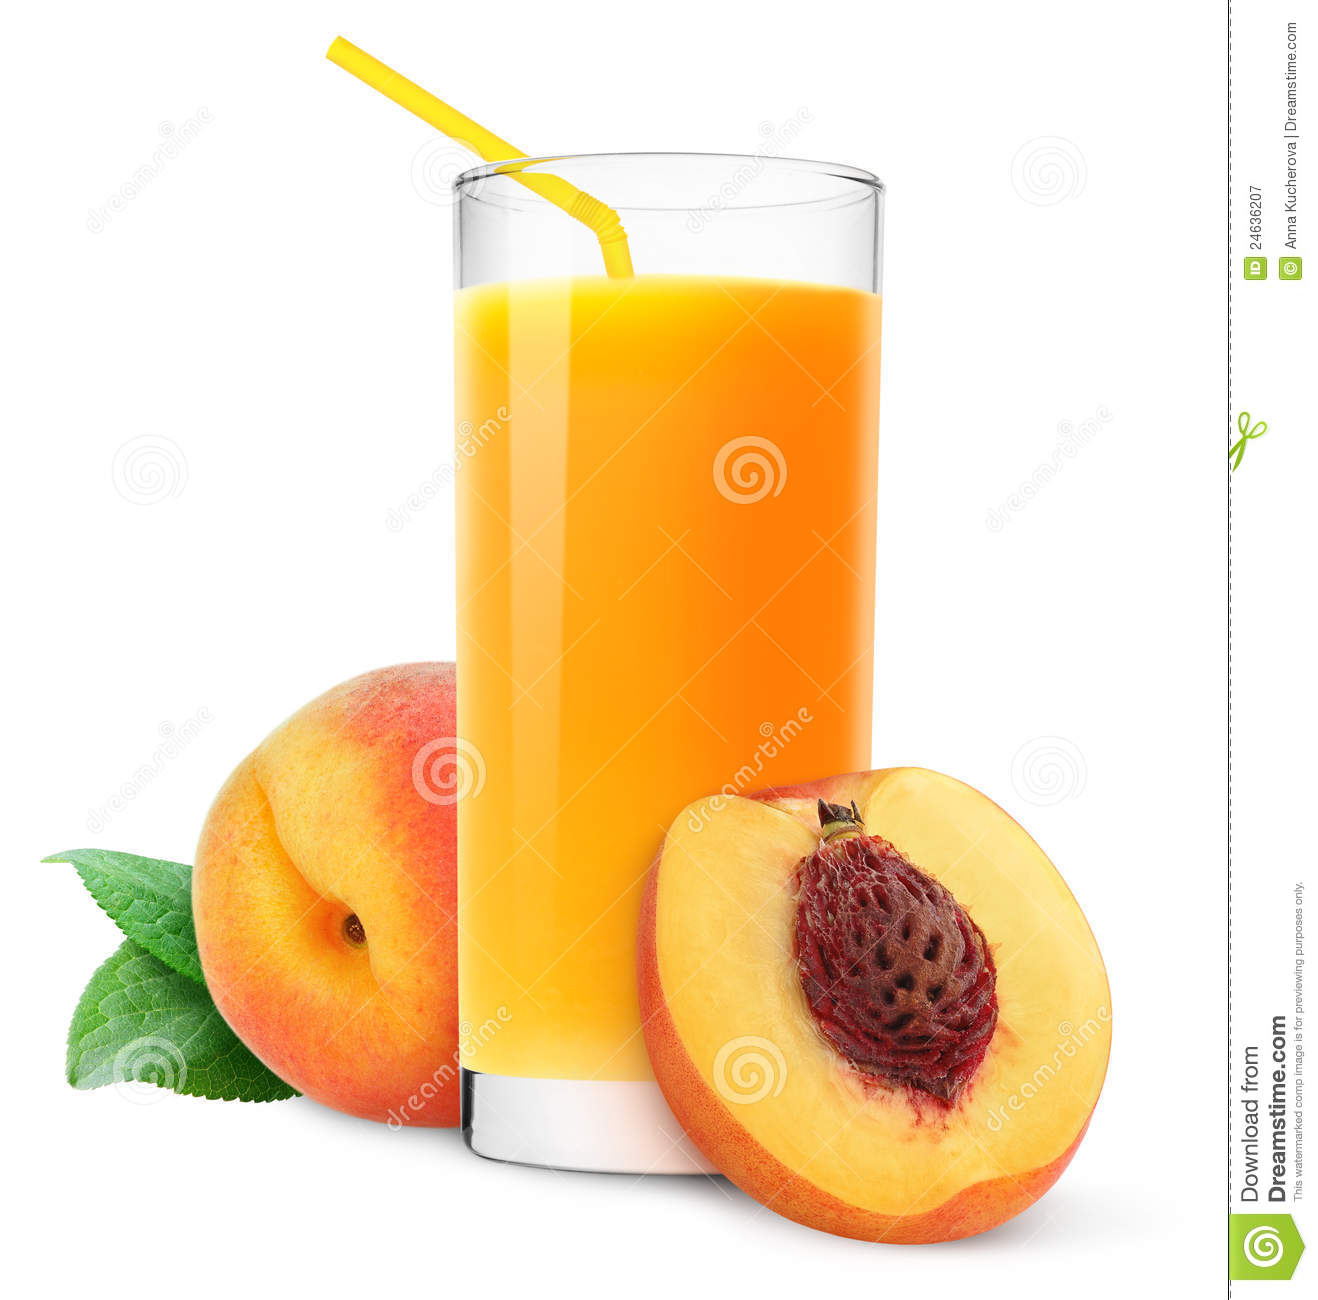 Peach Juice Royalty Free Stock Photography - Image: 24636207